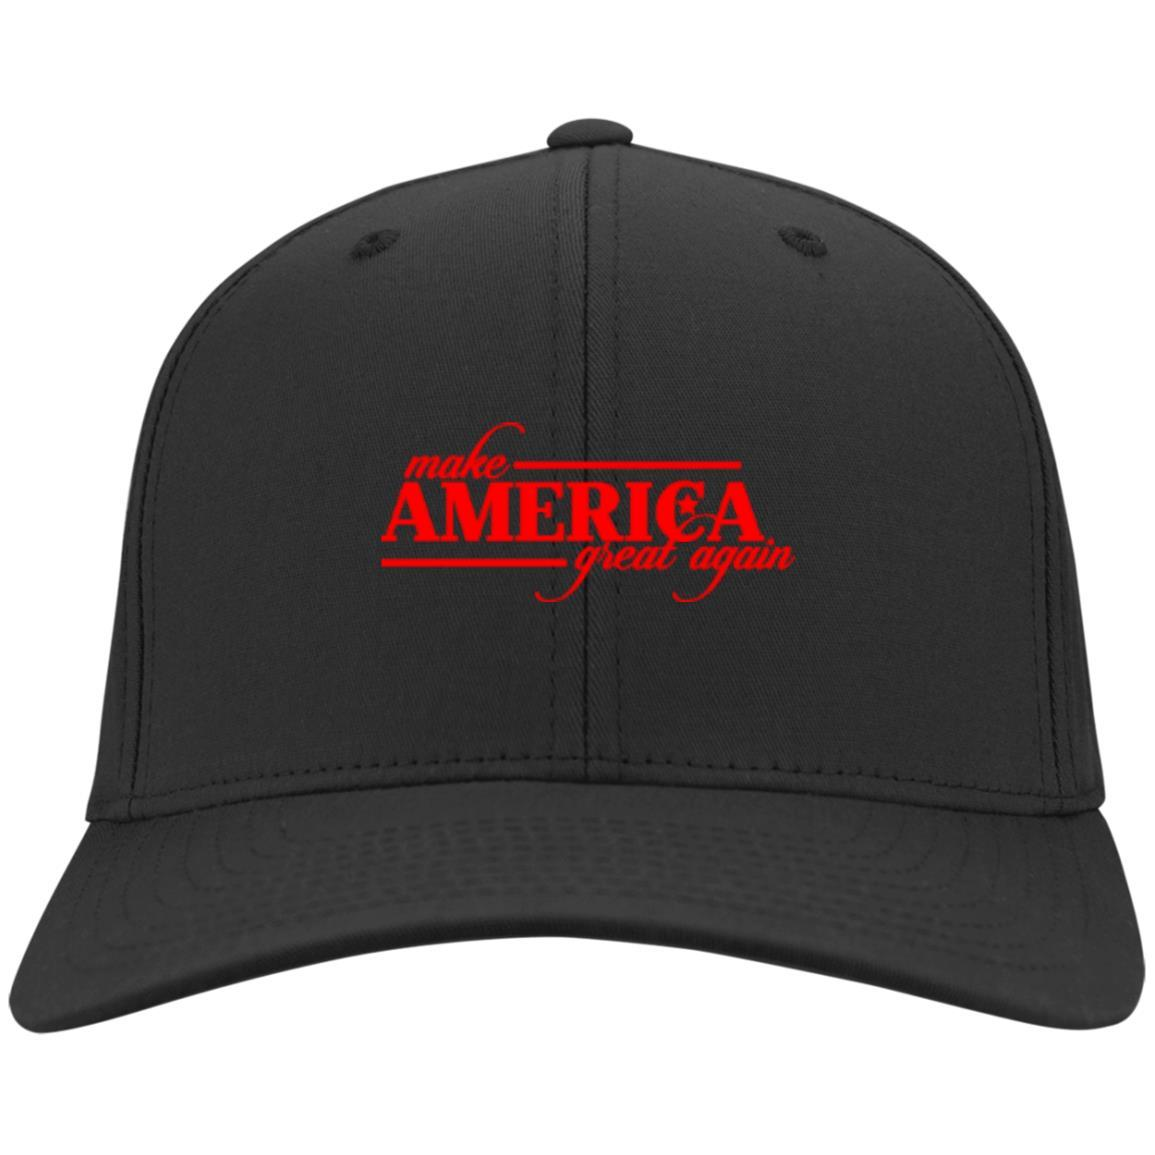 Make America Great Again - Port & Co. Twill Cap Black